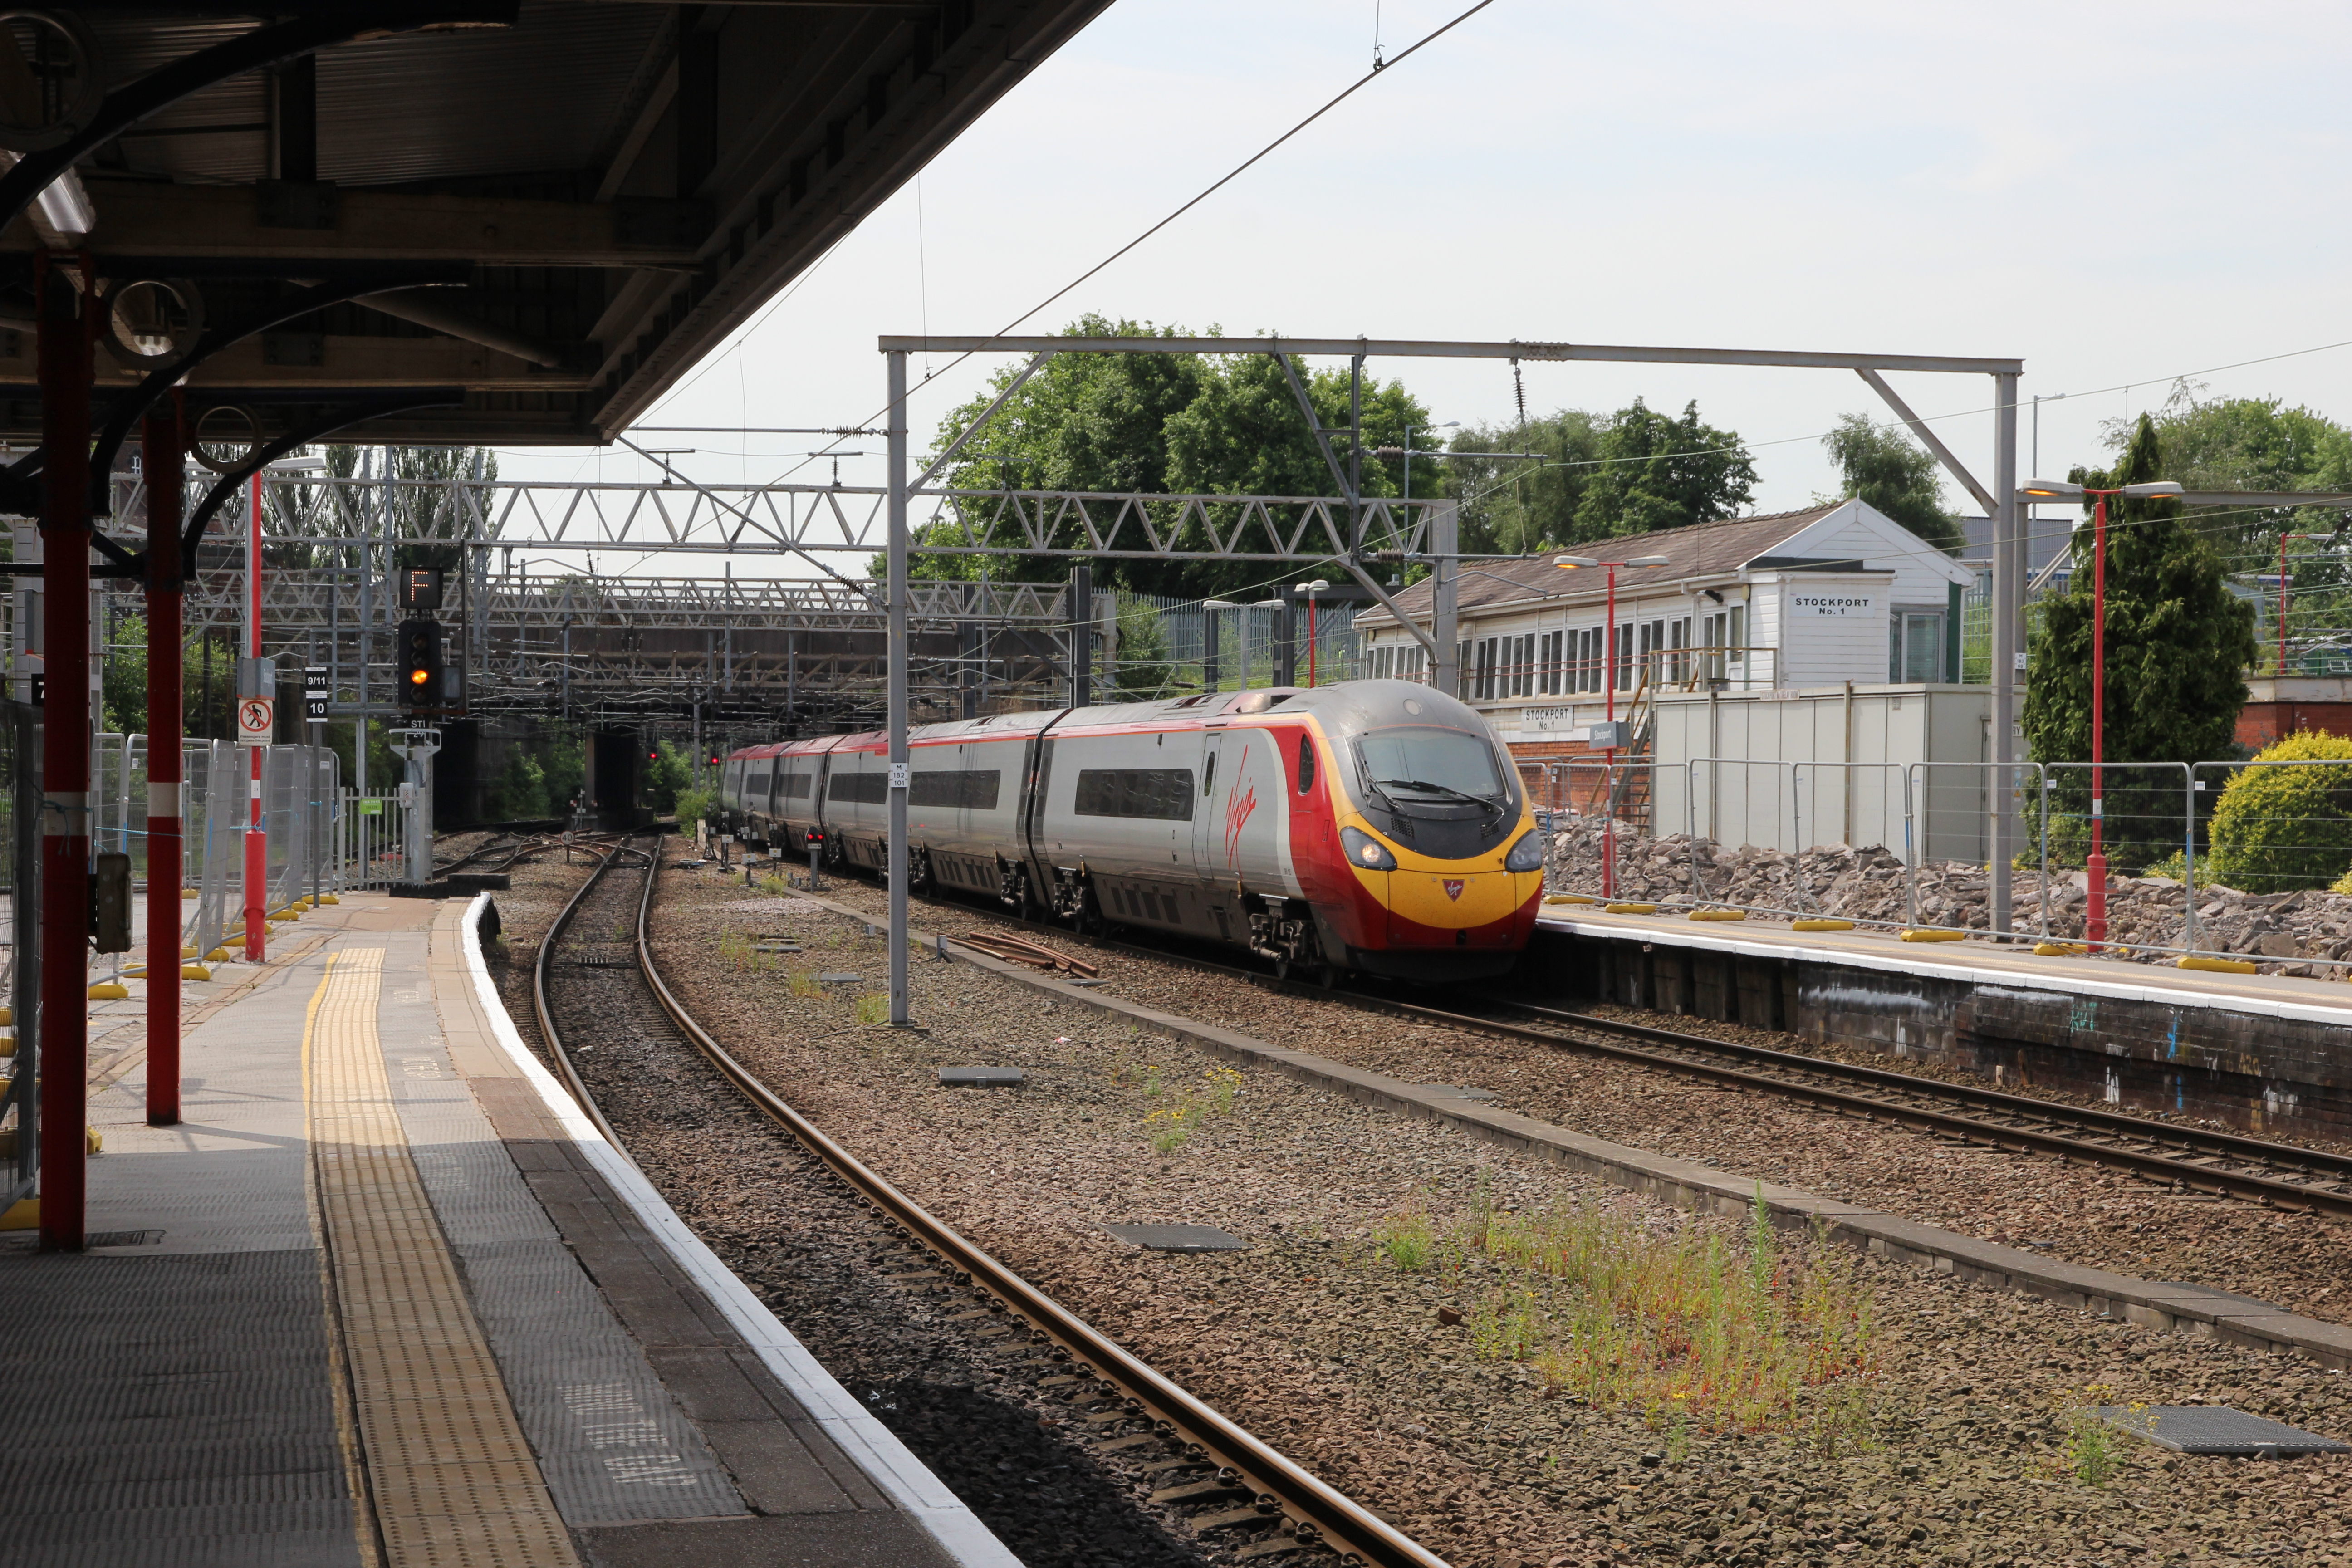 CIRAS - Dispatch safer at Stockport Station after review